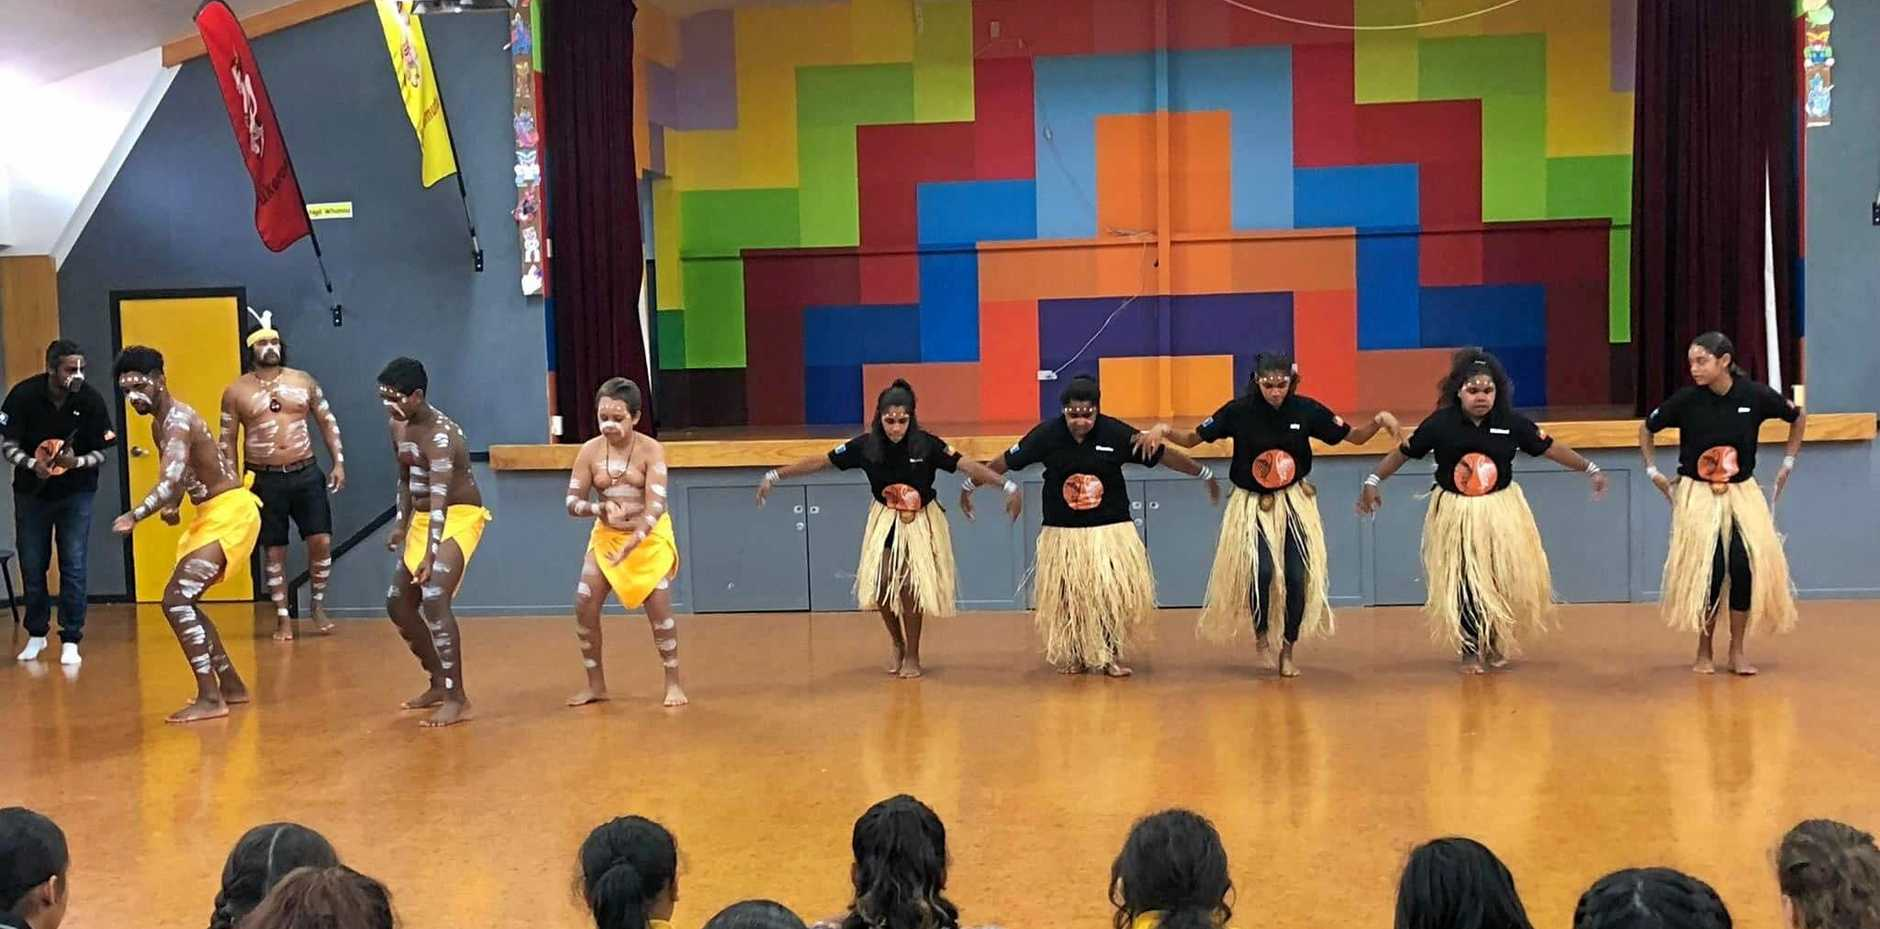 CROSS COUNTRY CULTURES: The Kunurang Krew performed their first dance and song at Rotorua Primary School as part of their cultural immersion program in New Zealand.